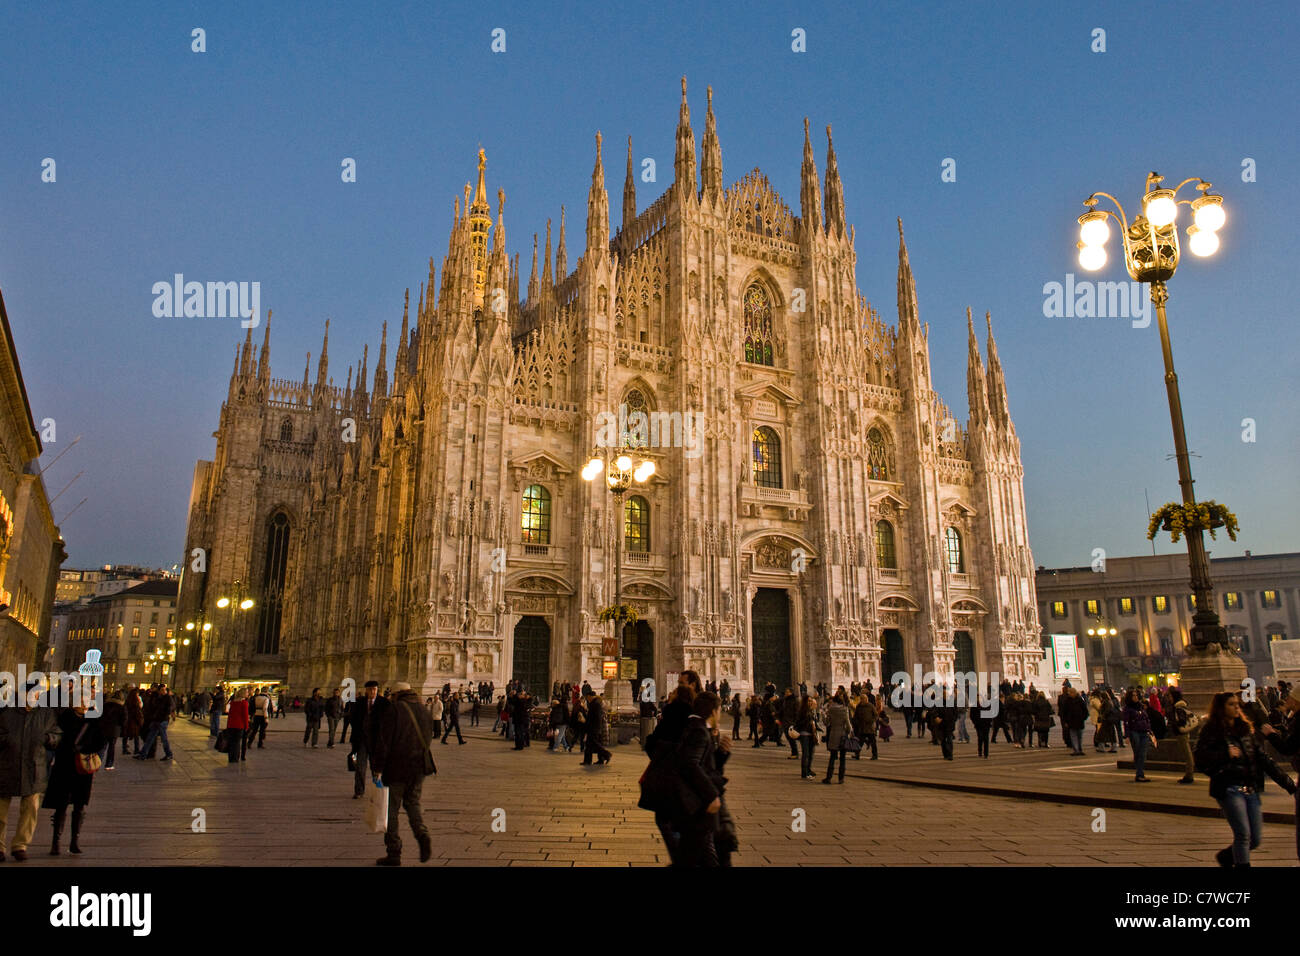 Italy, Lombardy, Milan, the Duomo at dusk - Stock Image